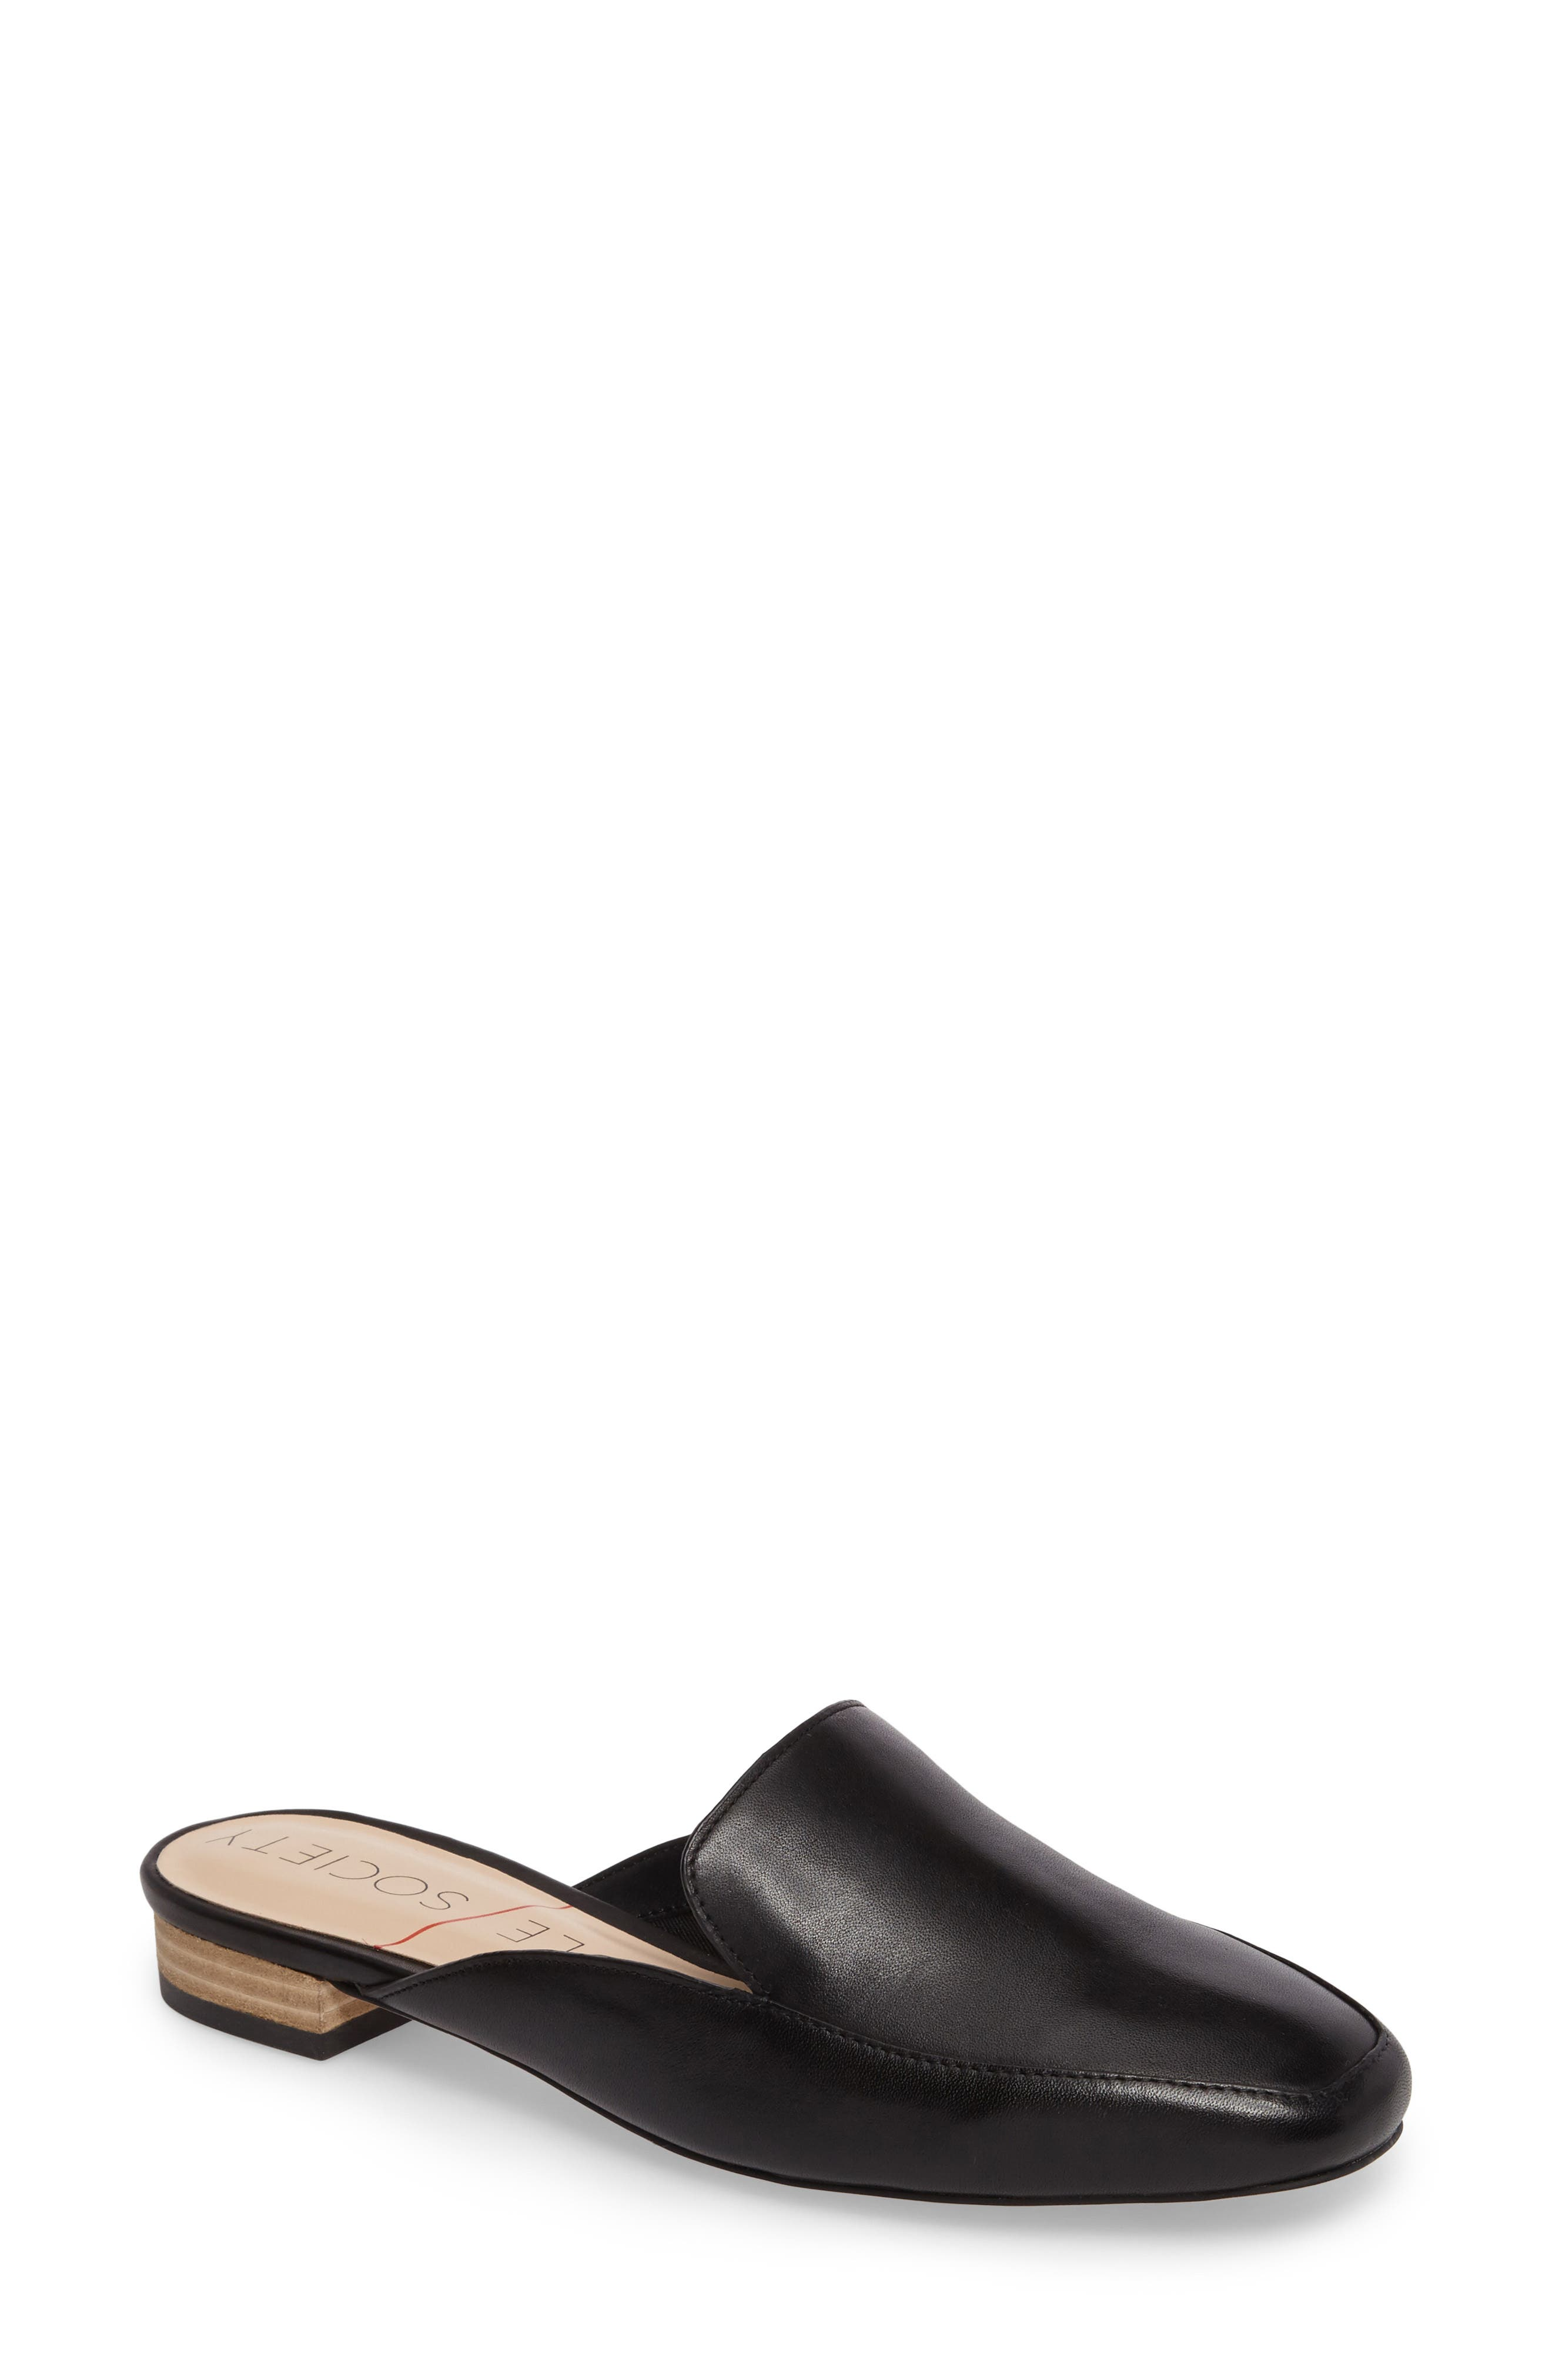 Main Image - Sole Society Bedford Loafer Flat (Women)